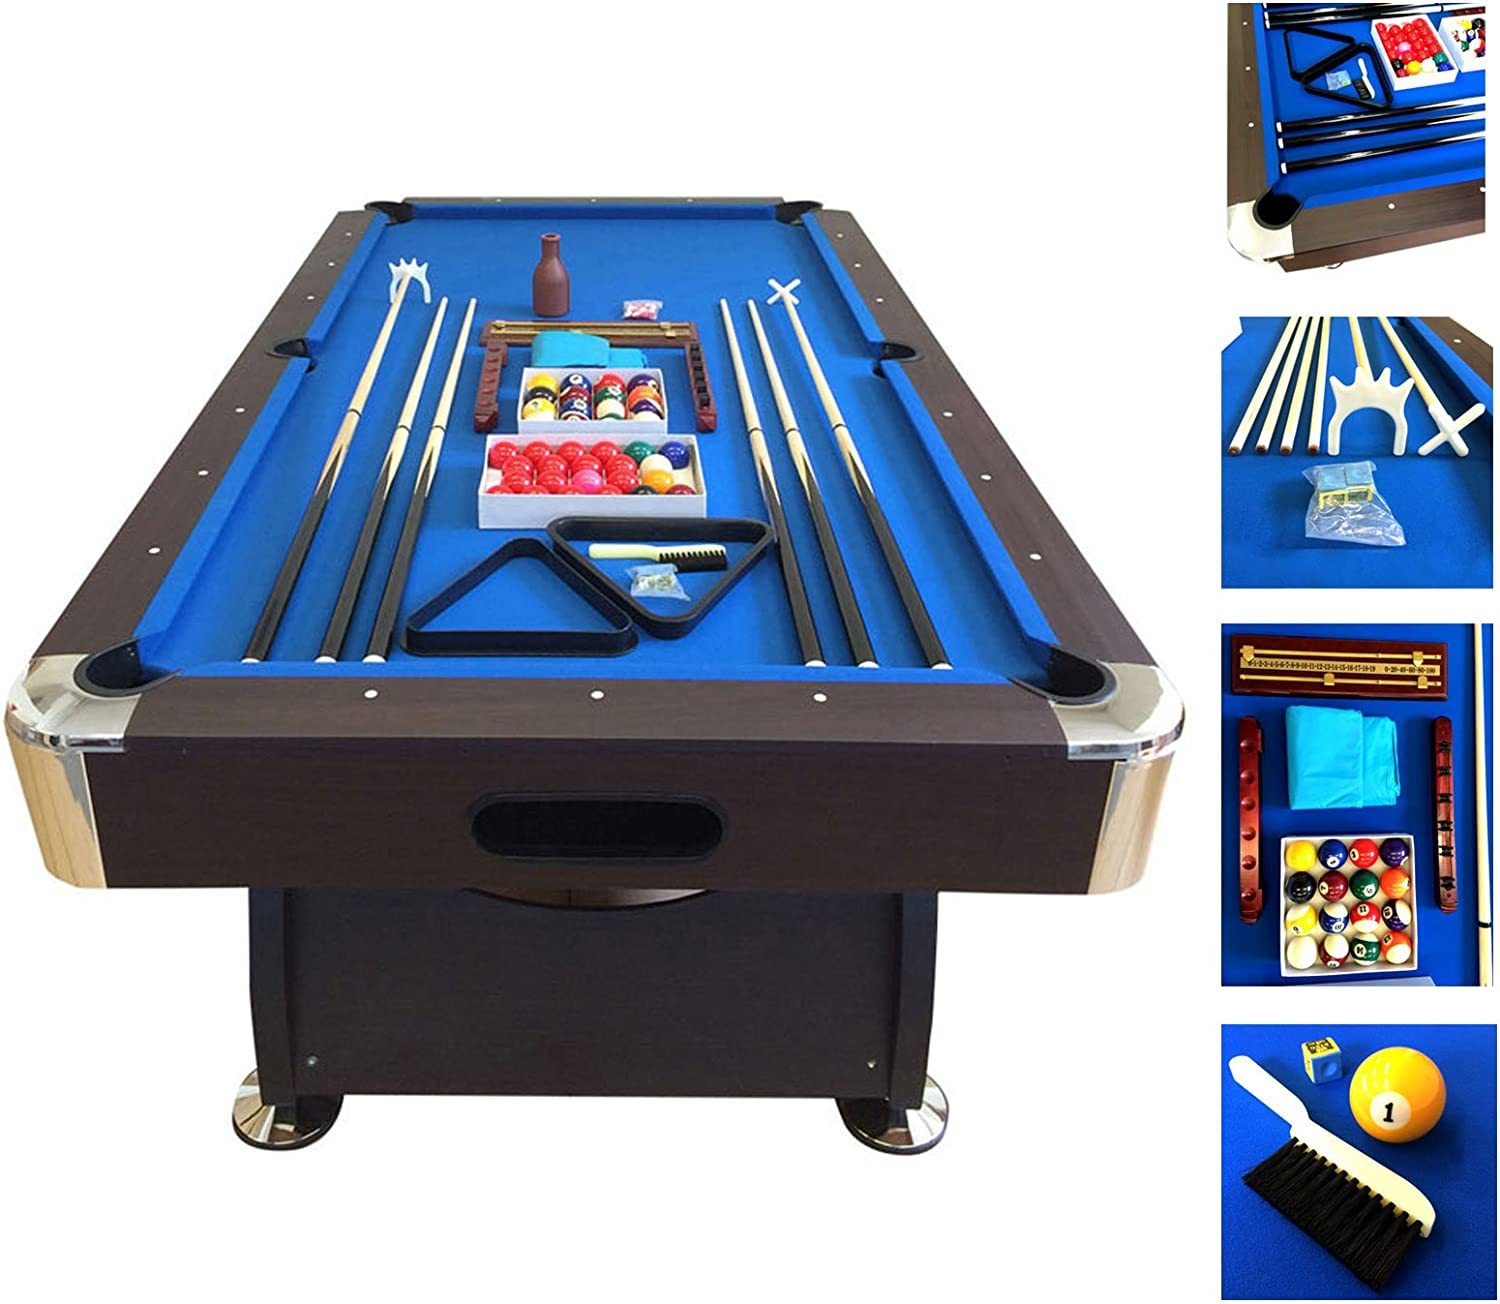 SIMBAUSA Billiard Pool Table 7' Full Feet Industry No. 1 Fashionable Snooker Set Accessorie